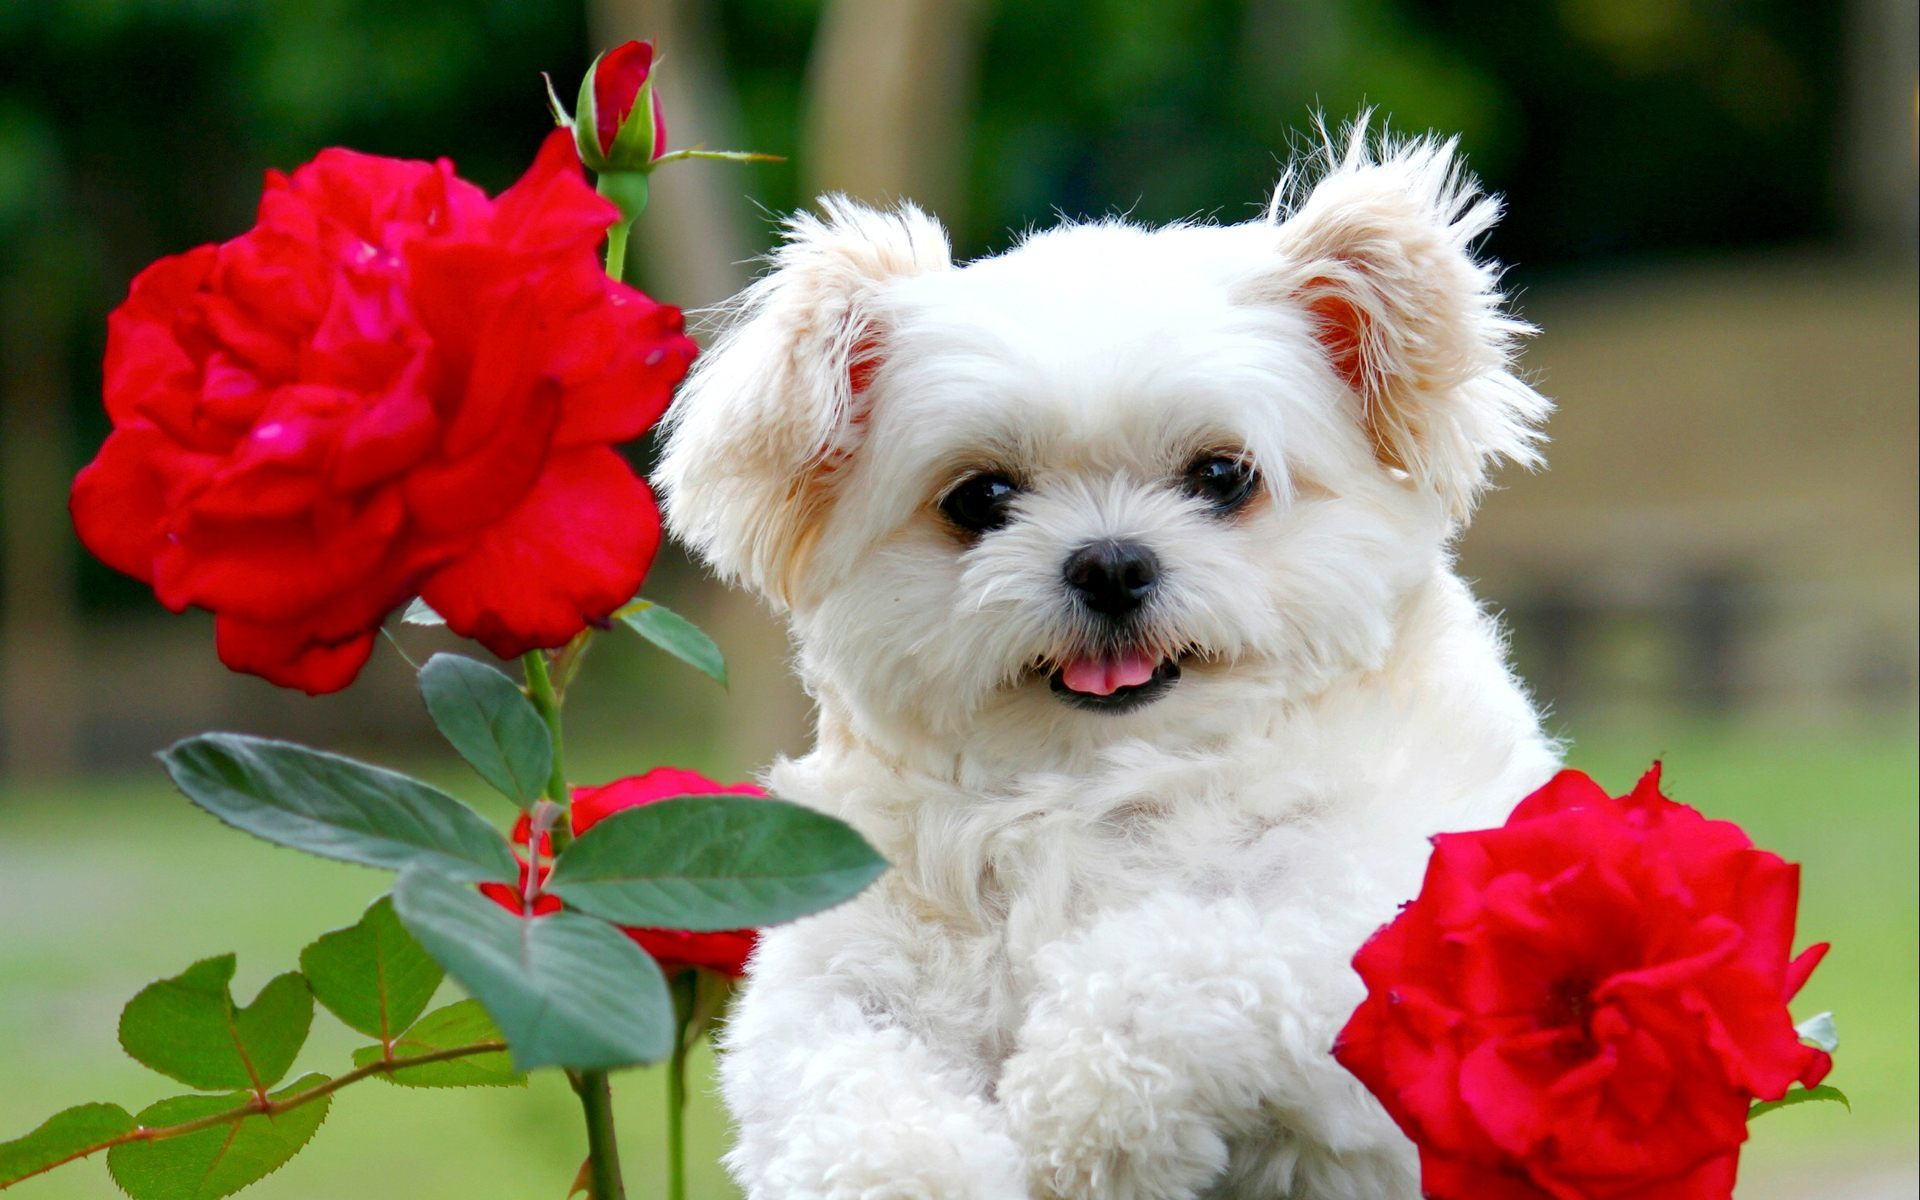 Cute Puppy Wallpaper Download For Desktop Pc Amp Mobile Cute Puppy Wallpaper Cute Fluffy Puppies Cute White Puppies